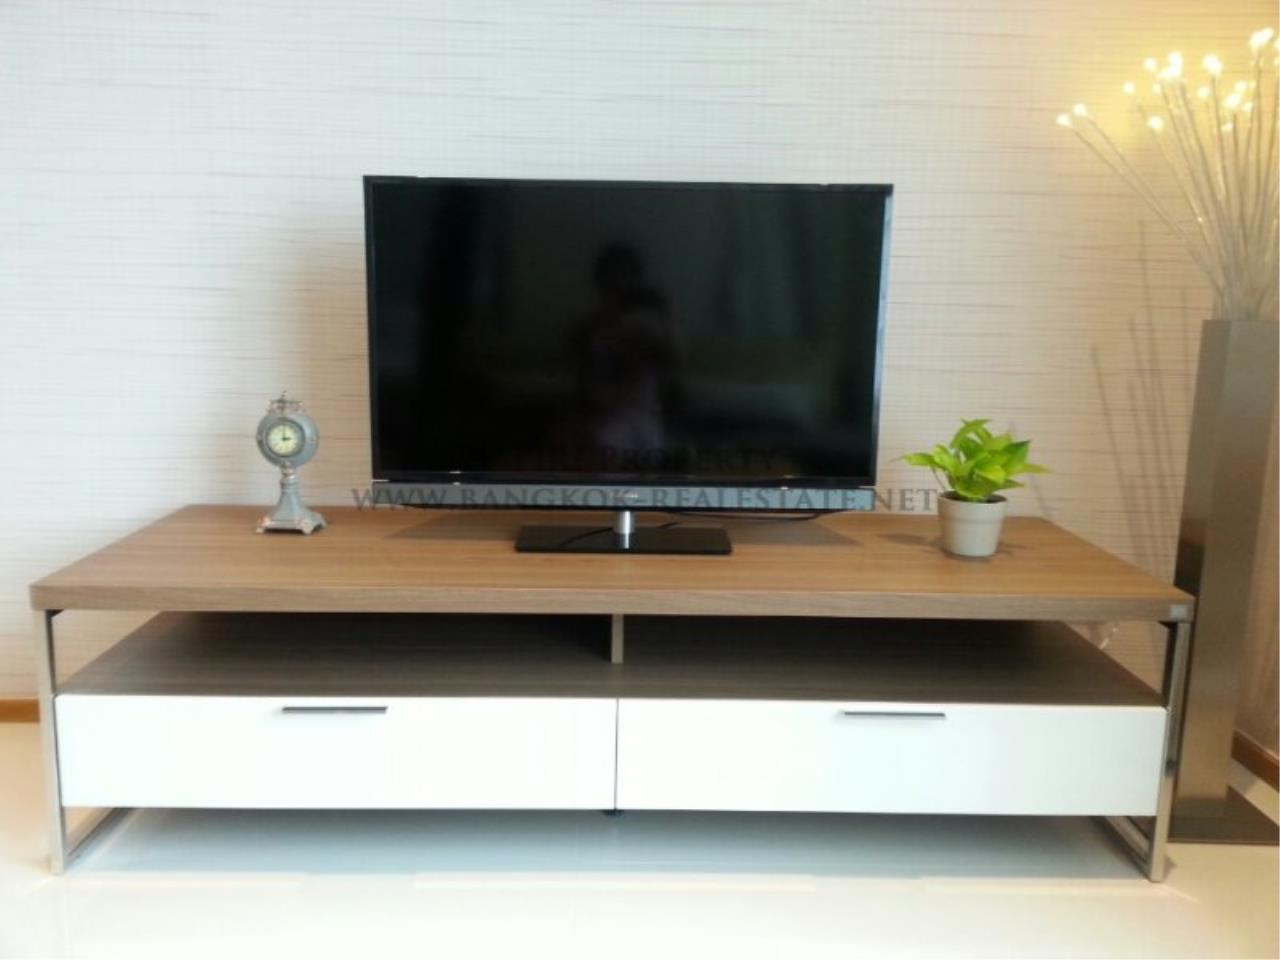 Piri Property Agency's Emporio Place Condo in Phrom Phong - 1 Bedroom for Rent 5